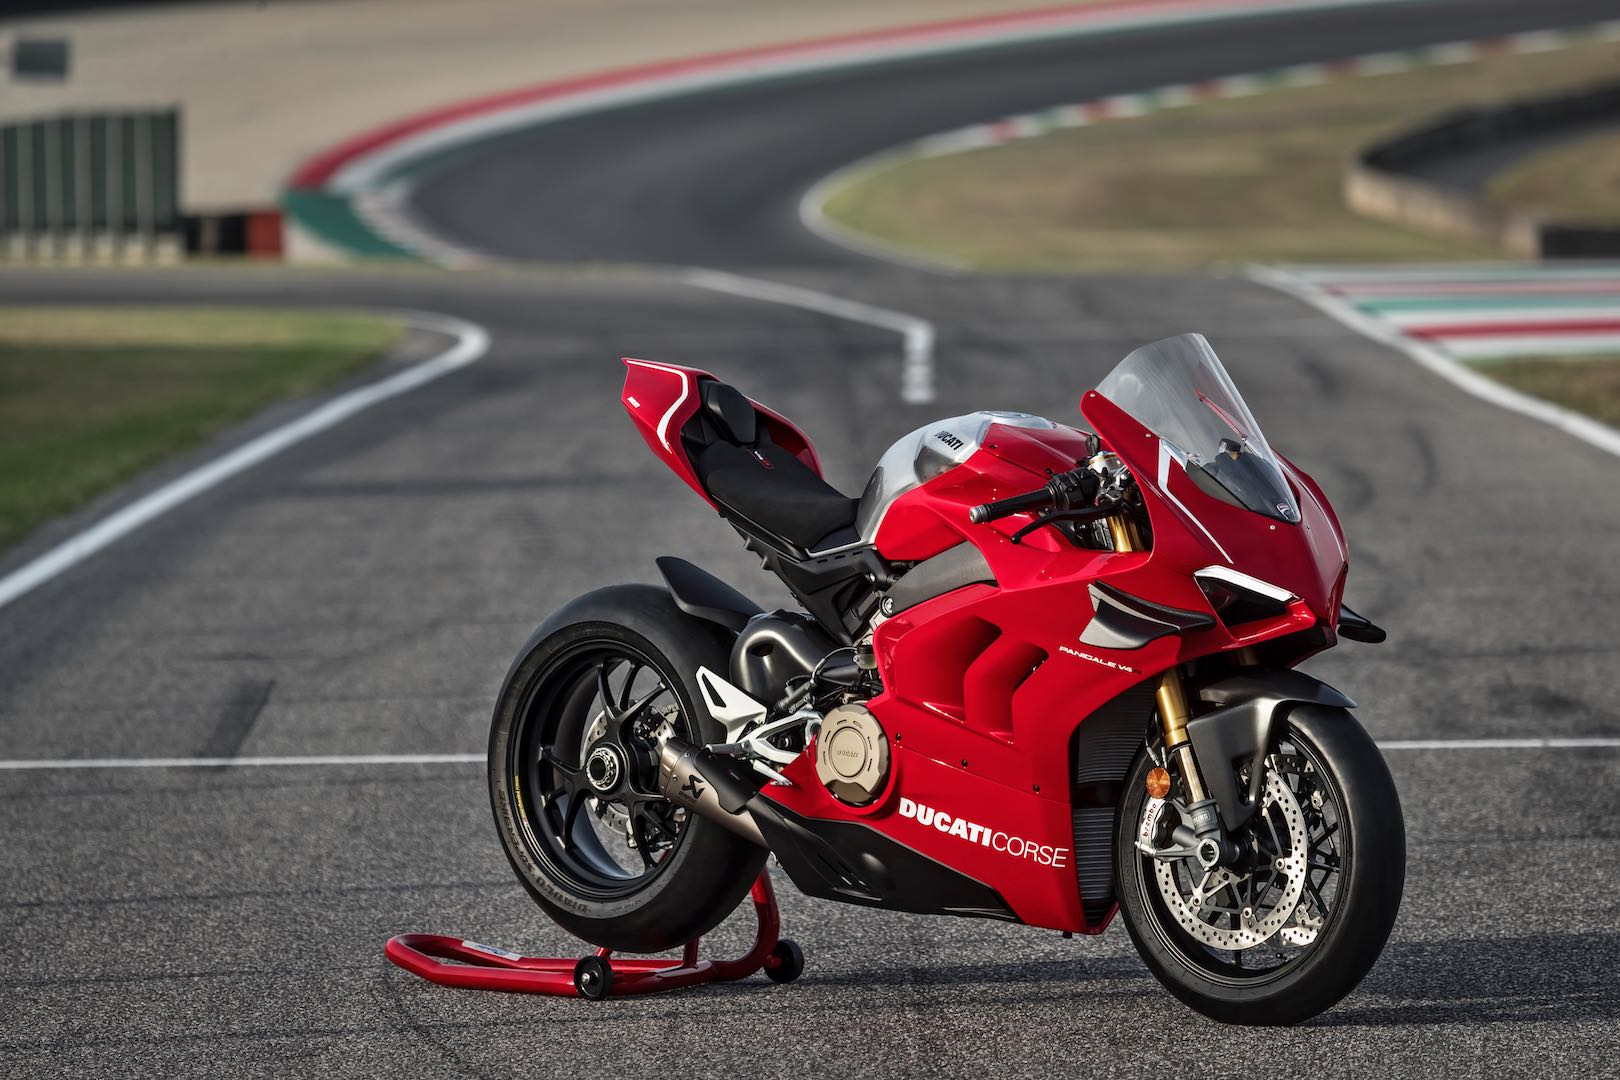 2019-ducati-panigale-v4-r-first-look-preview-7